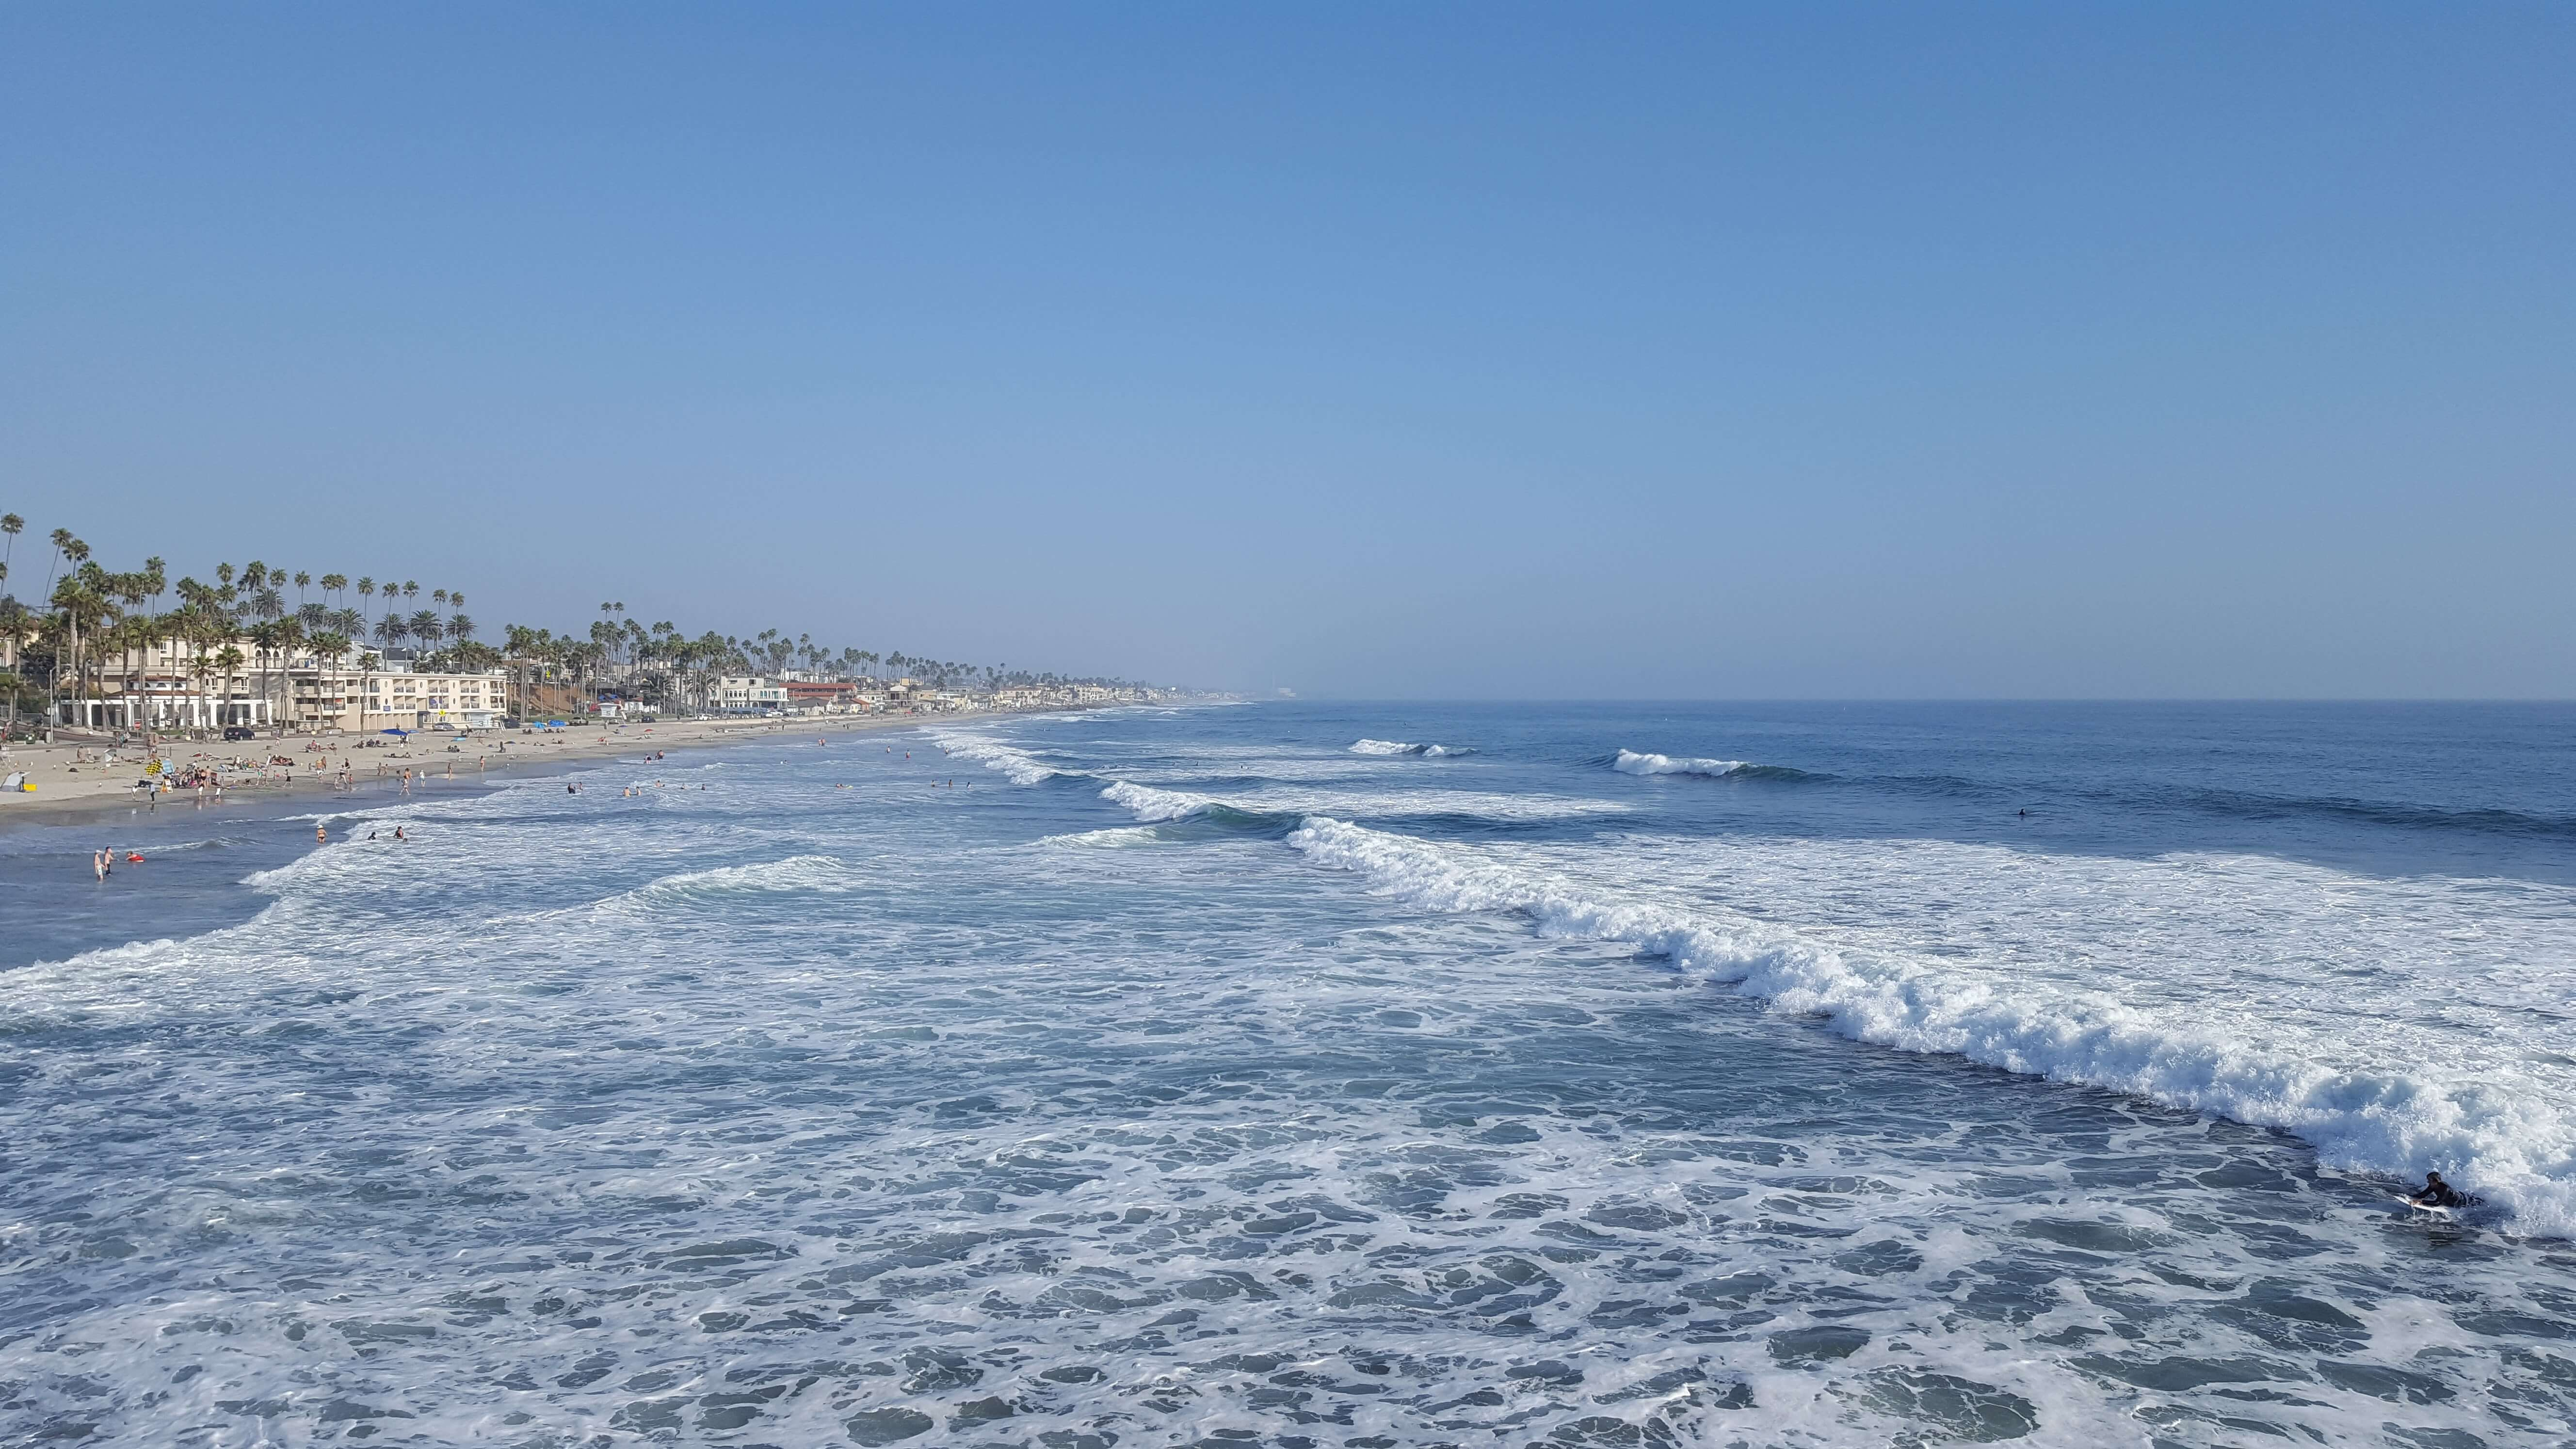 Beautiful day at Oceanside Pier